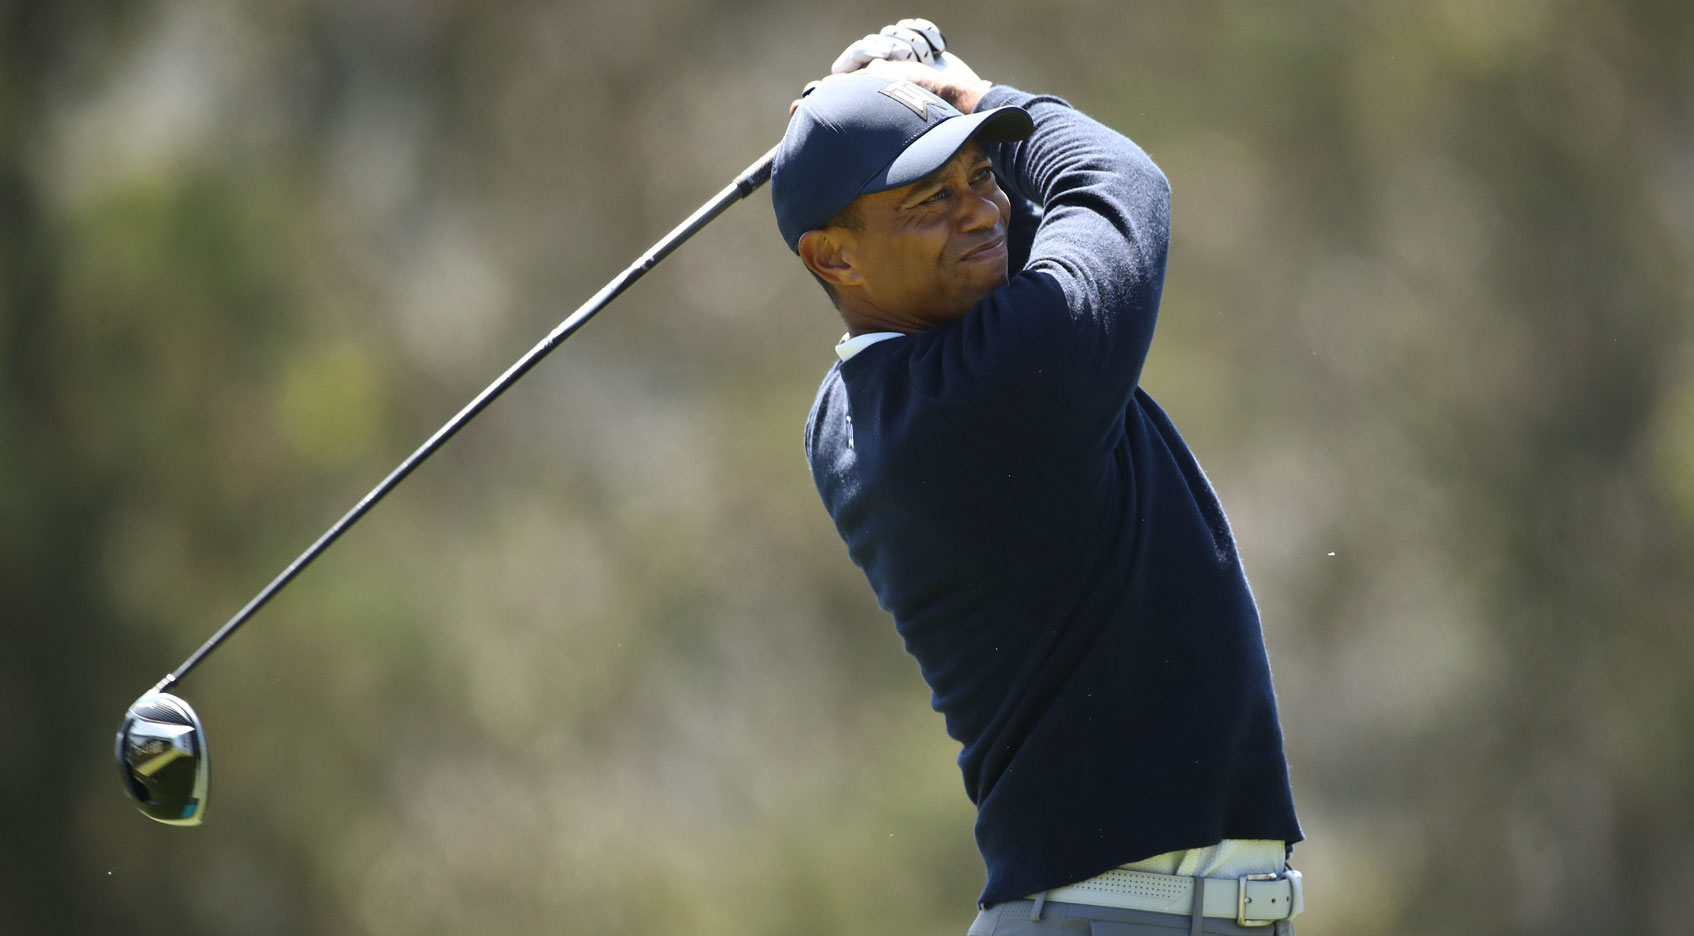 Tiger Woods makes cut after second-round 72 at PGA Championship